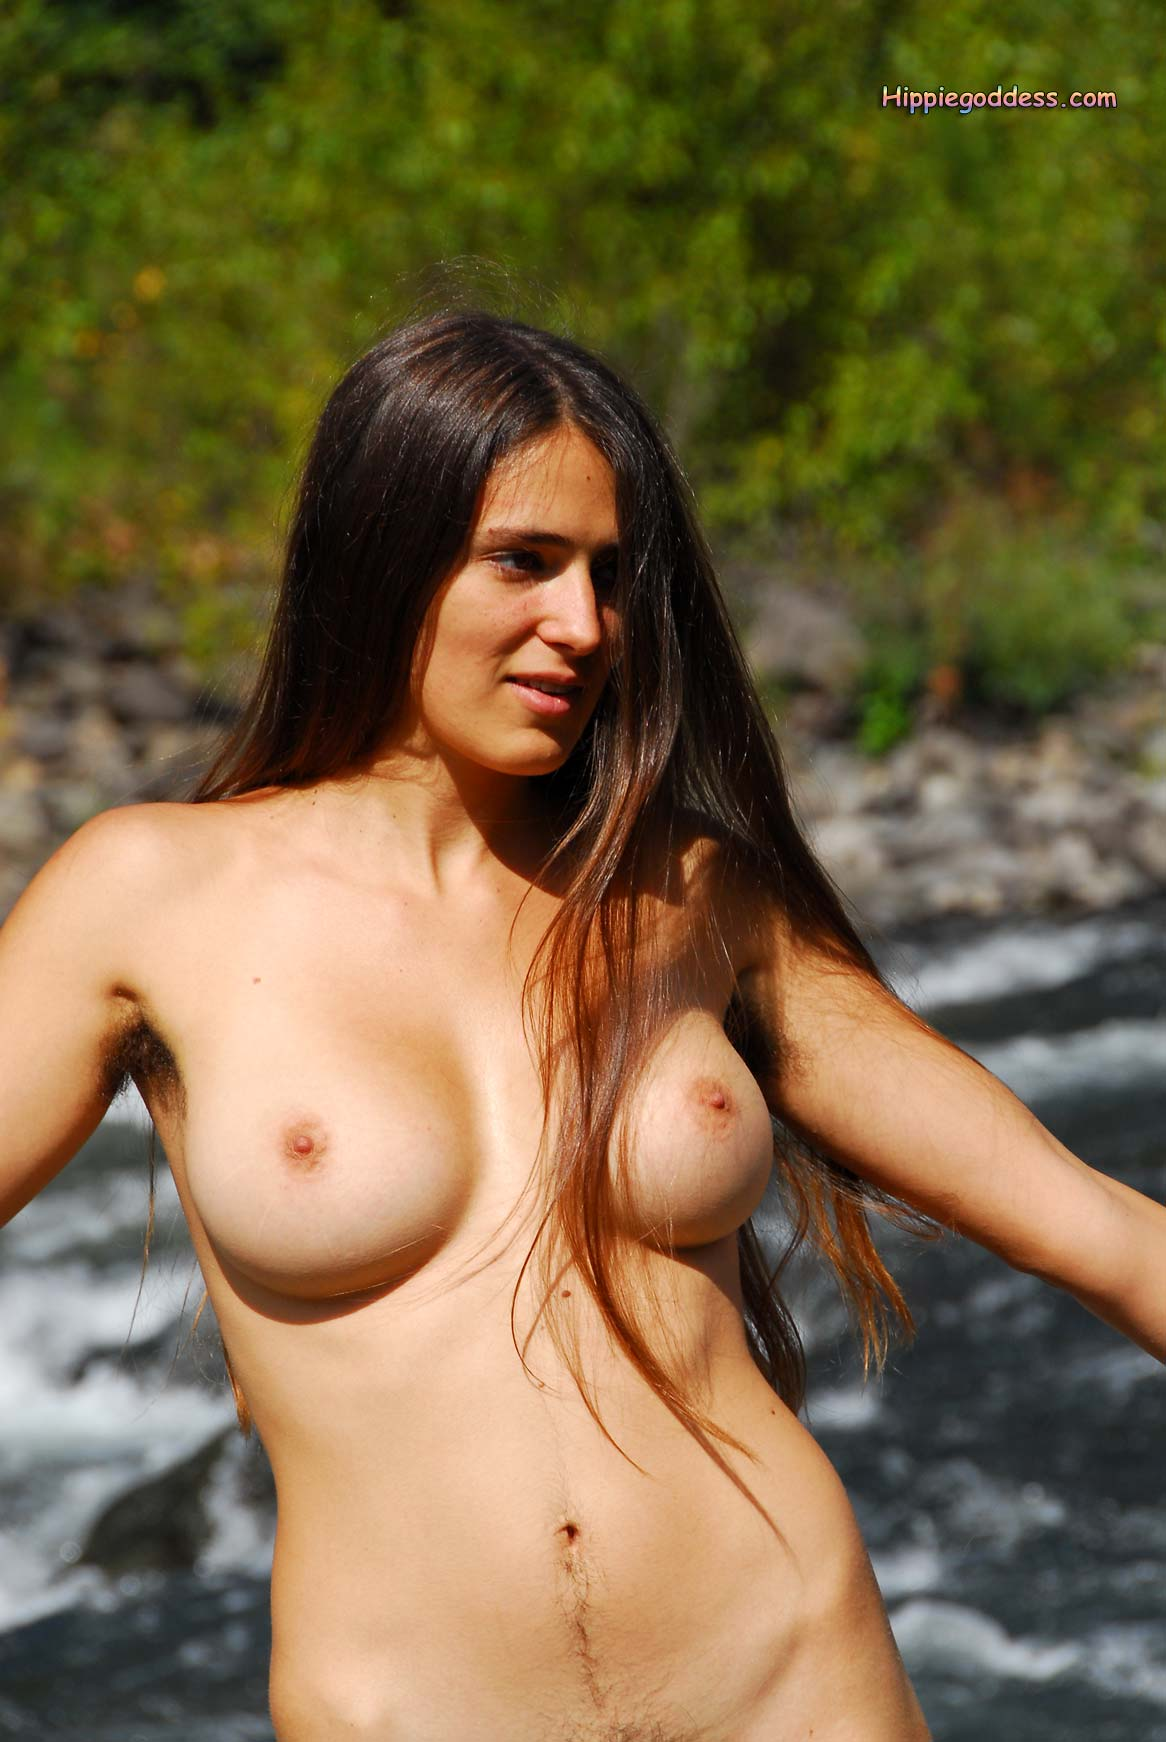 Big mature woman naked pictures